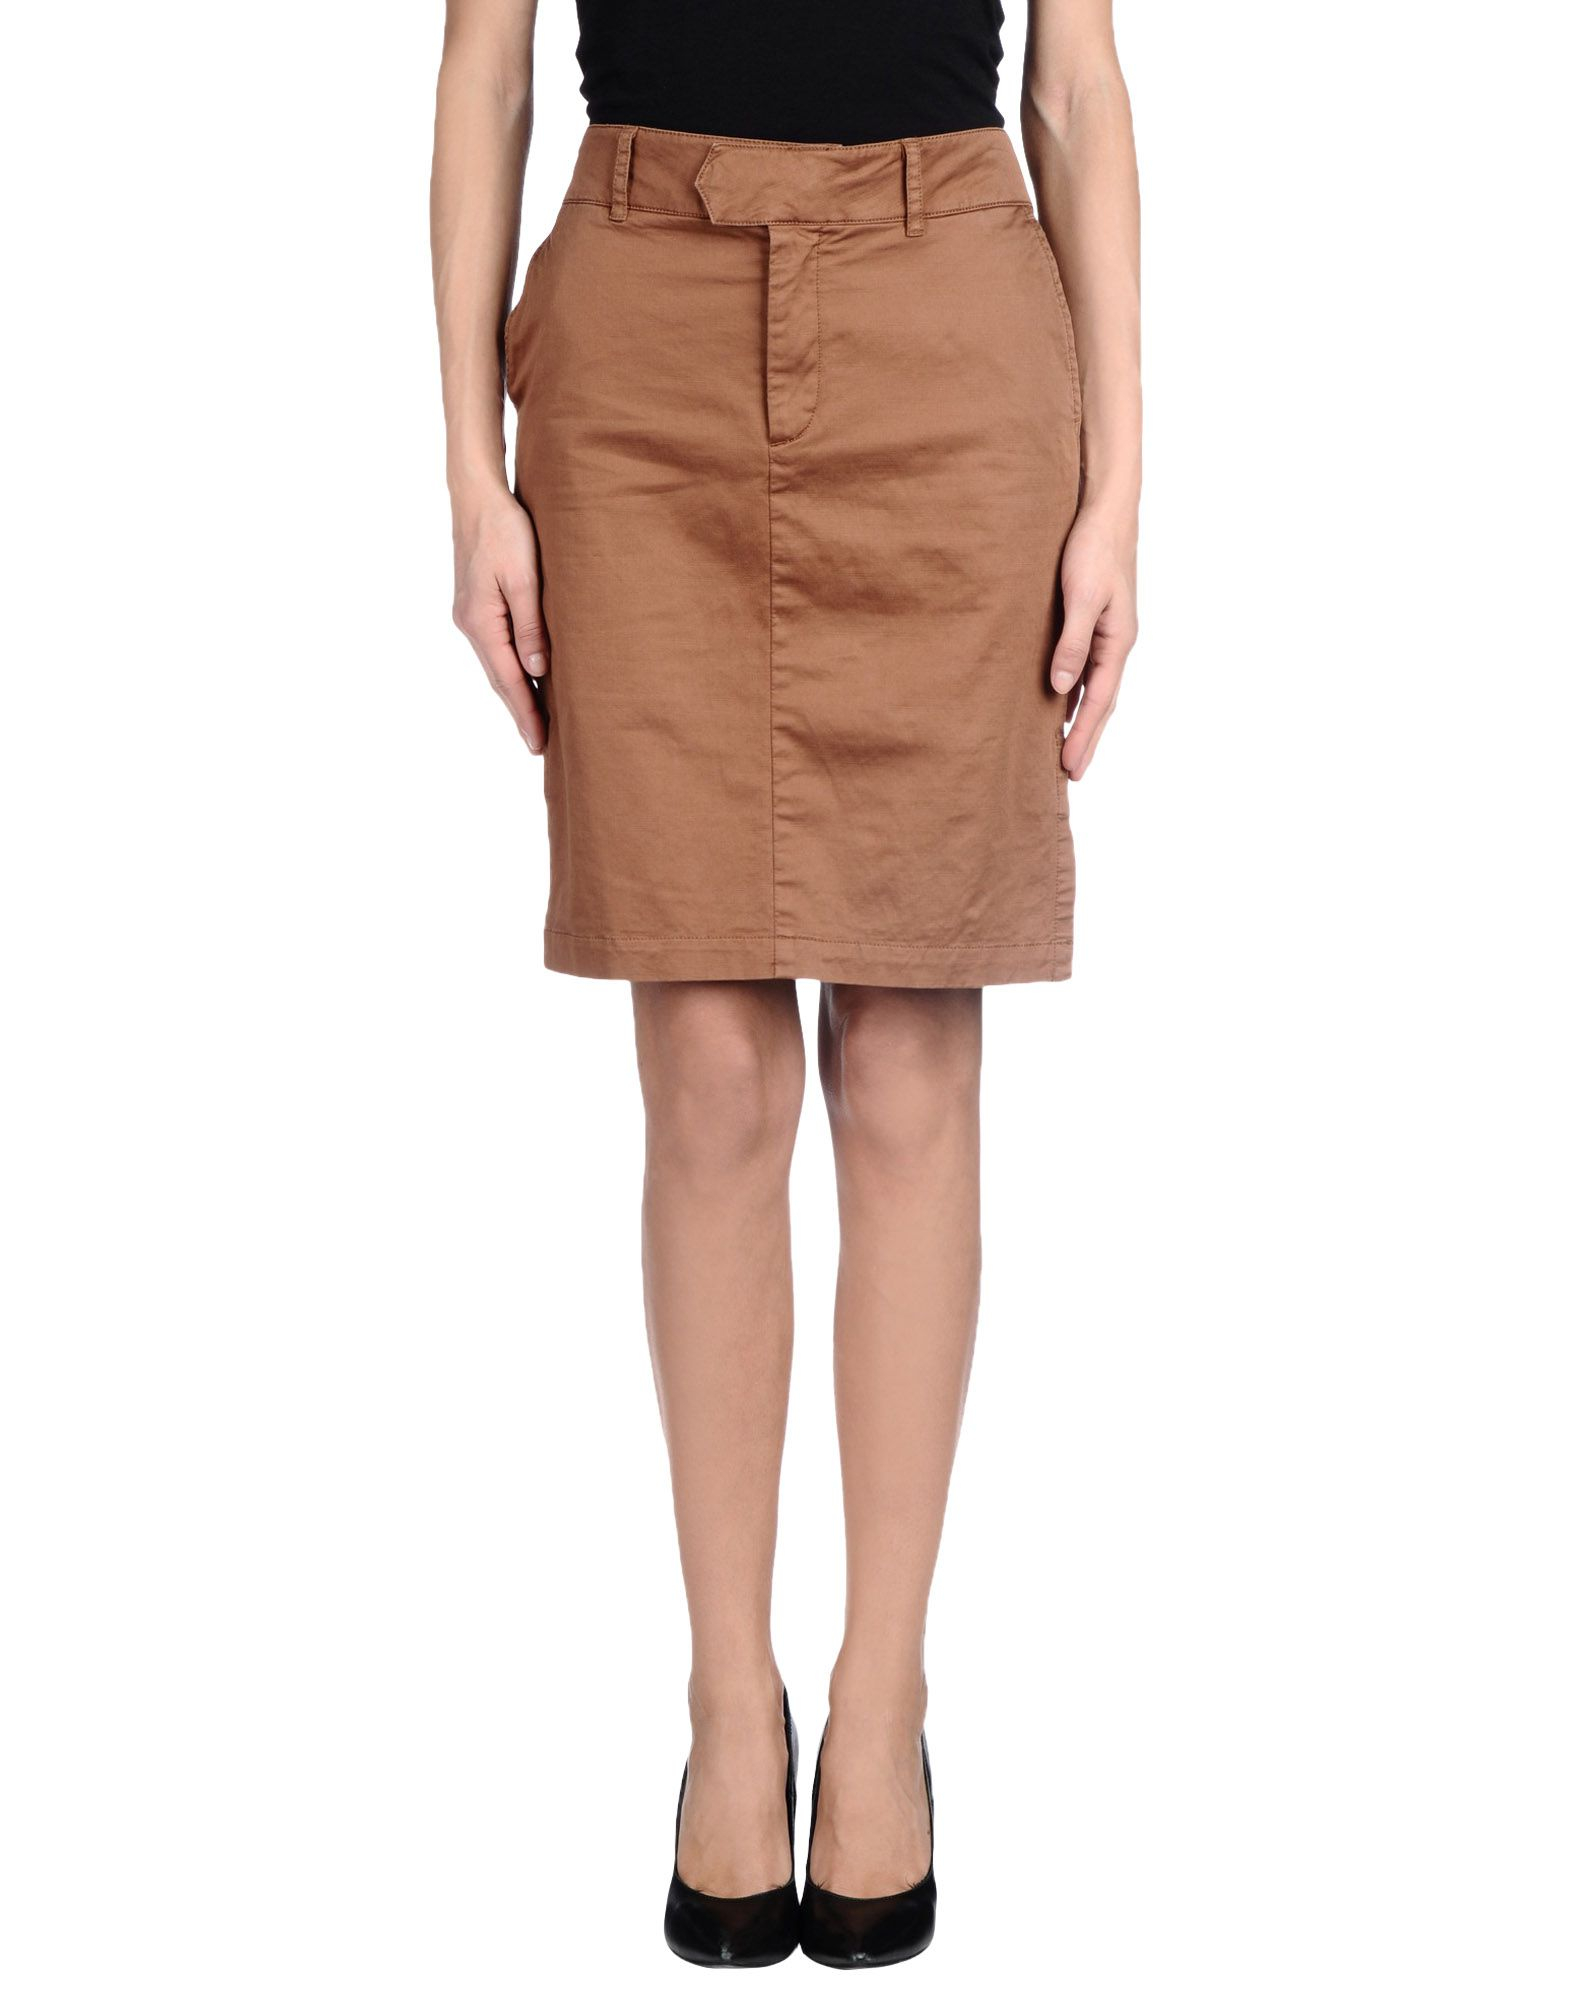 set knee length skirt in brown cocoa lyst